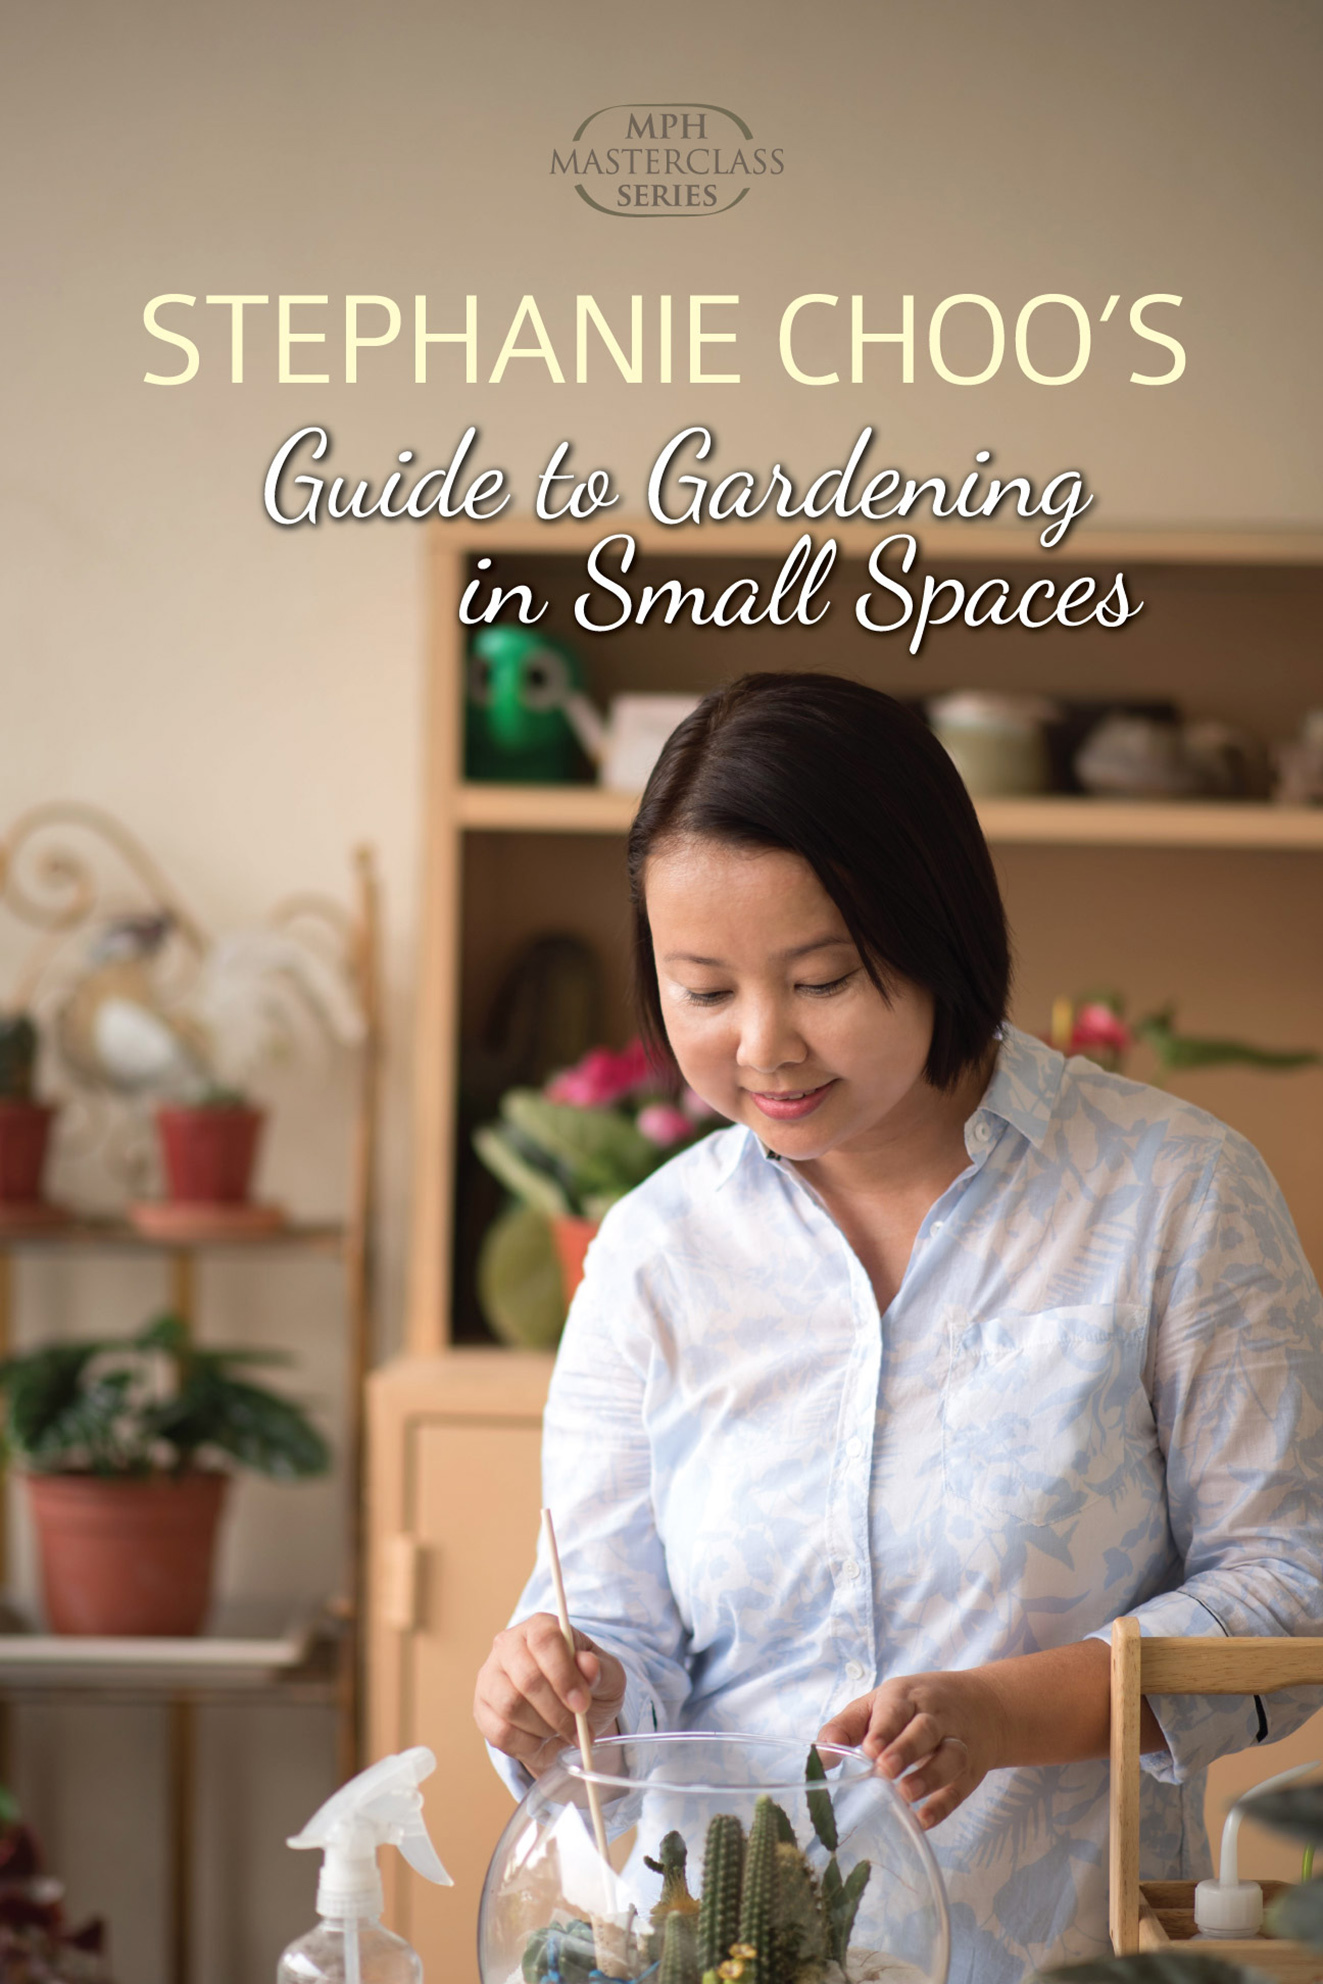 Stephanie Choo's Guide to Gardening in Small Spaces.jpg